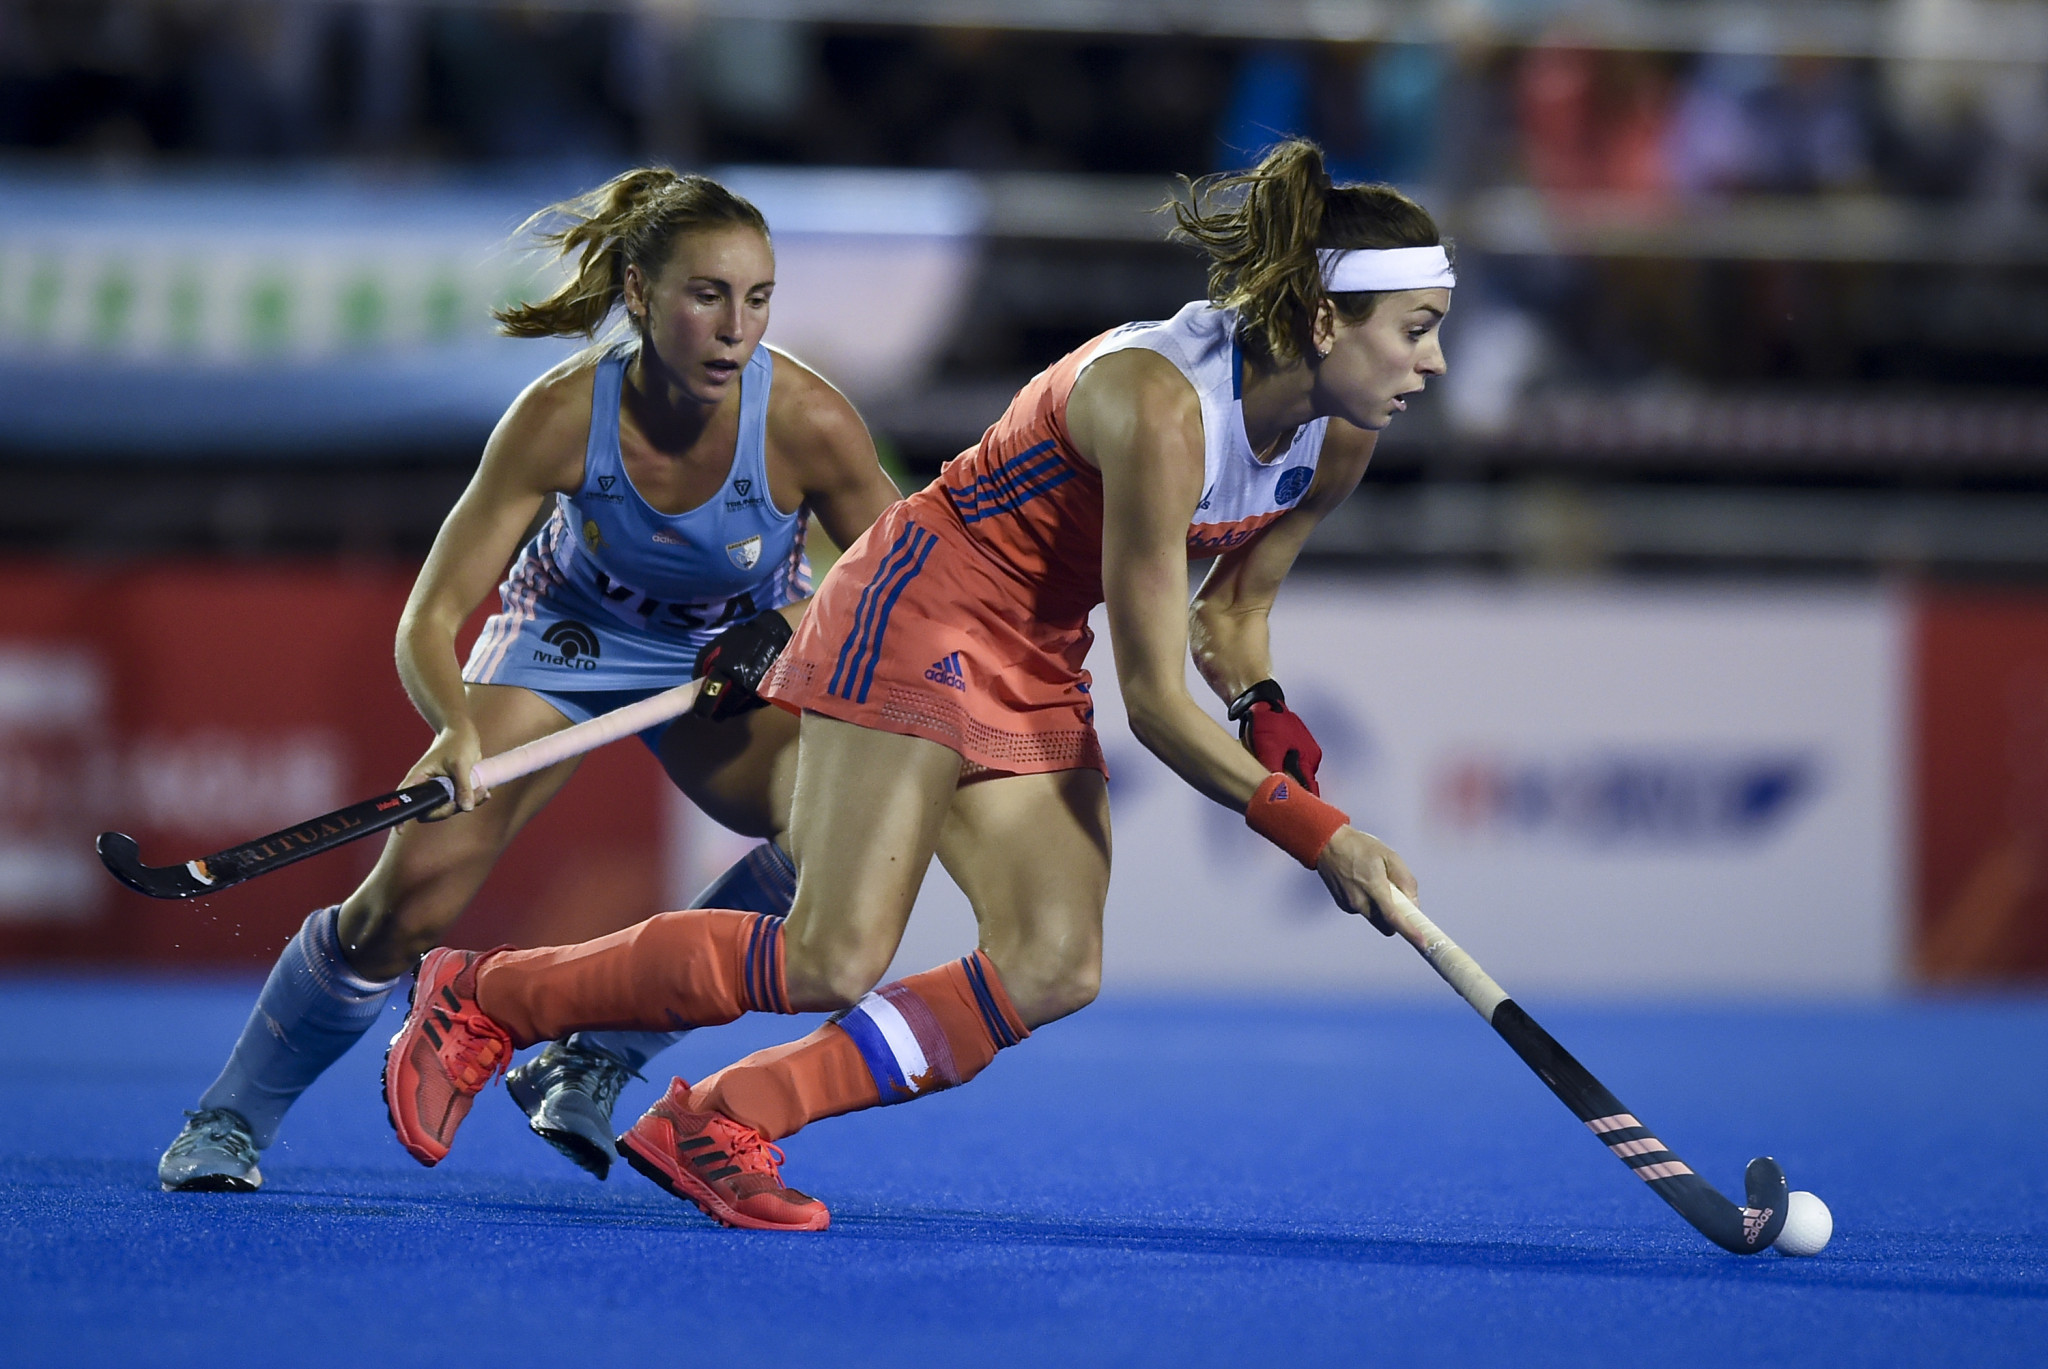 The Netherlands got the better of Argentina in the women's match held in Buenos Aires ©Getty Images